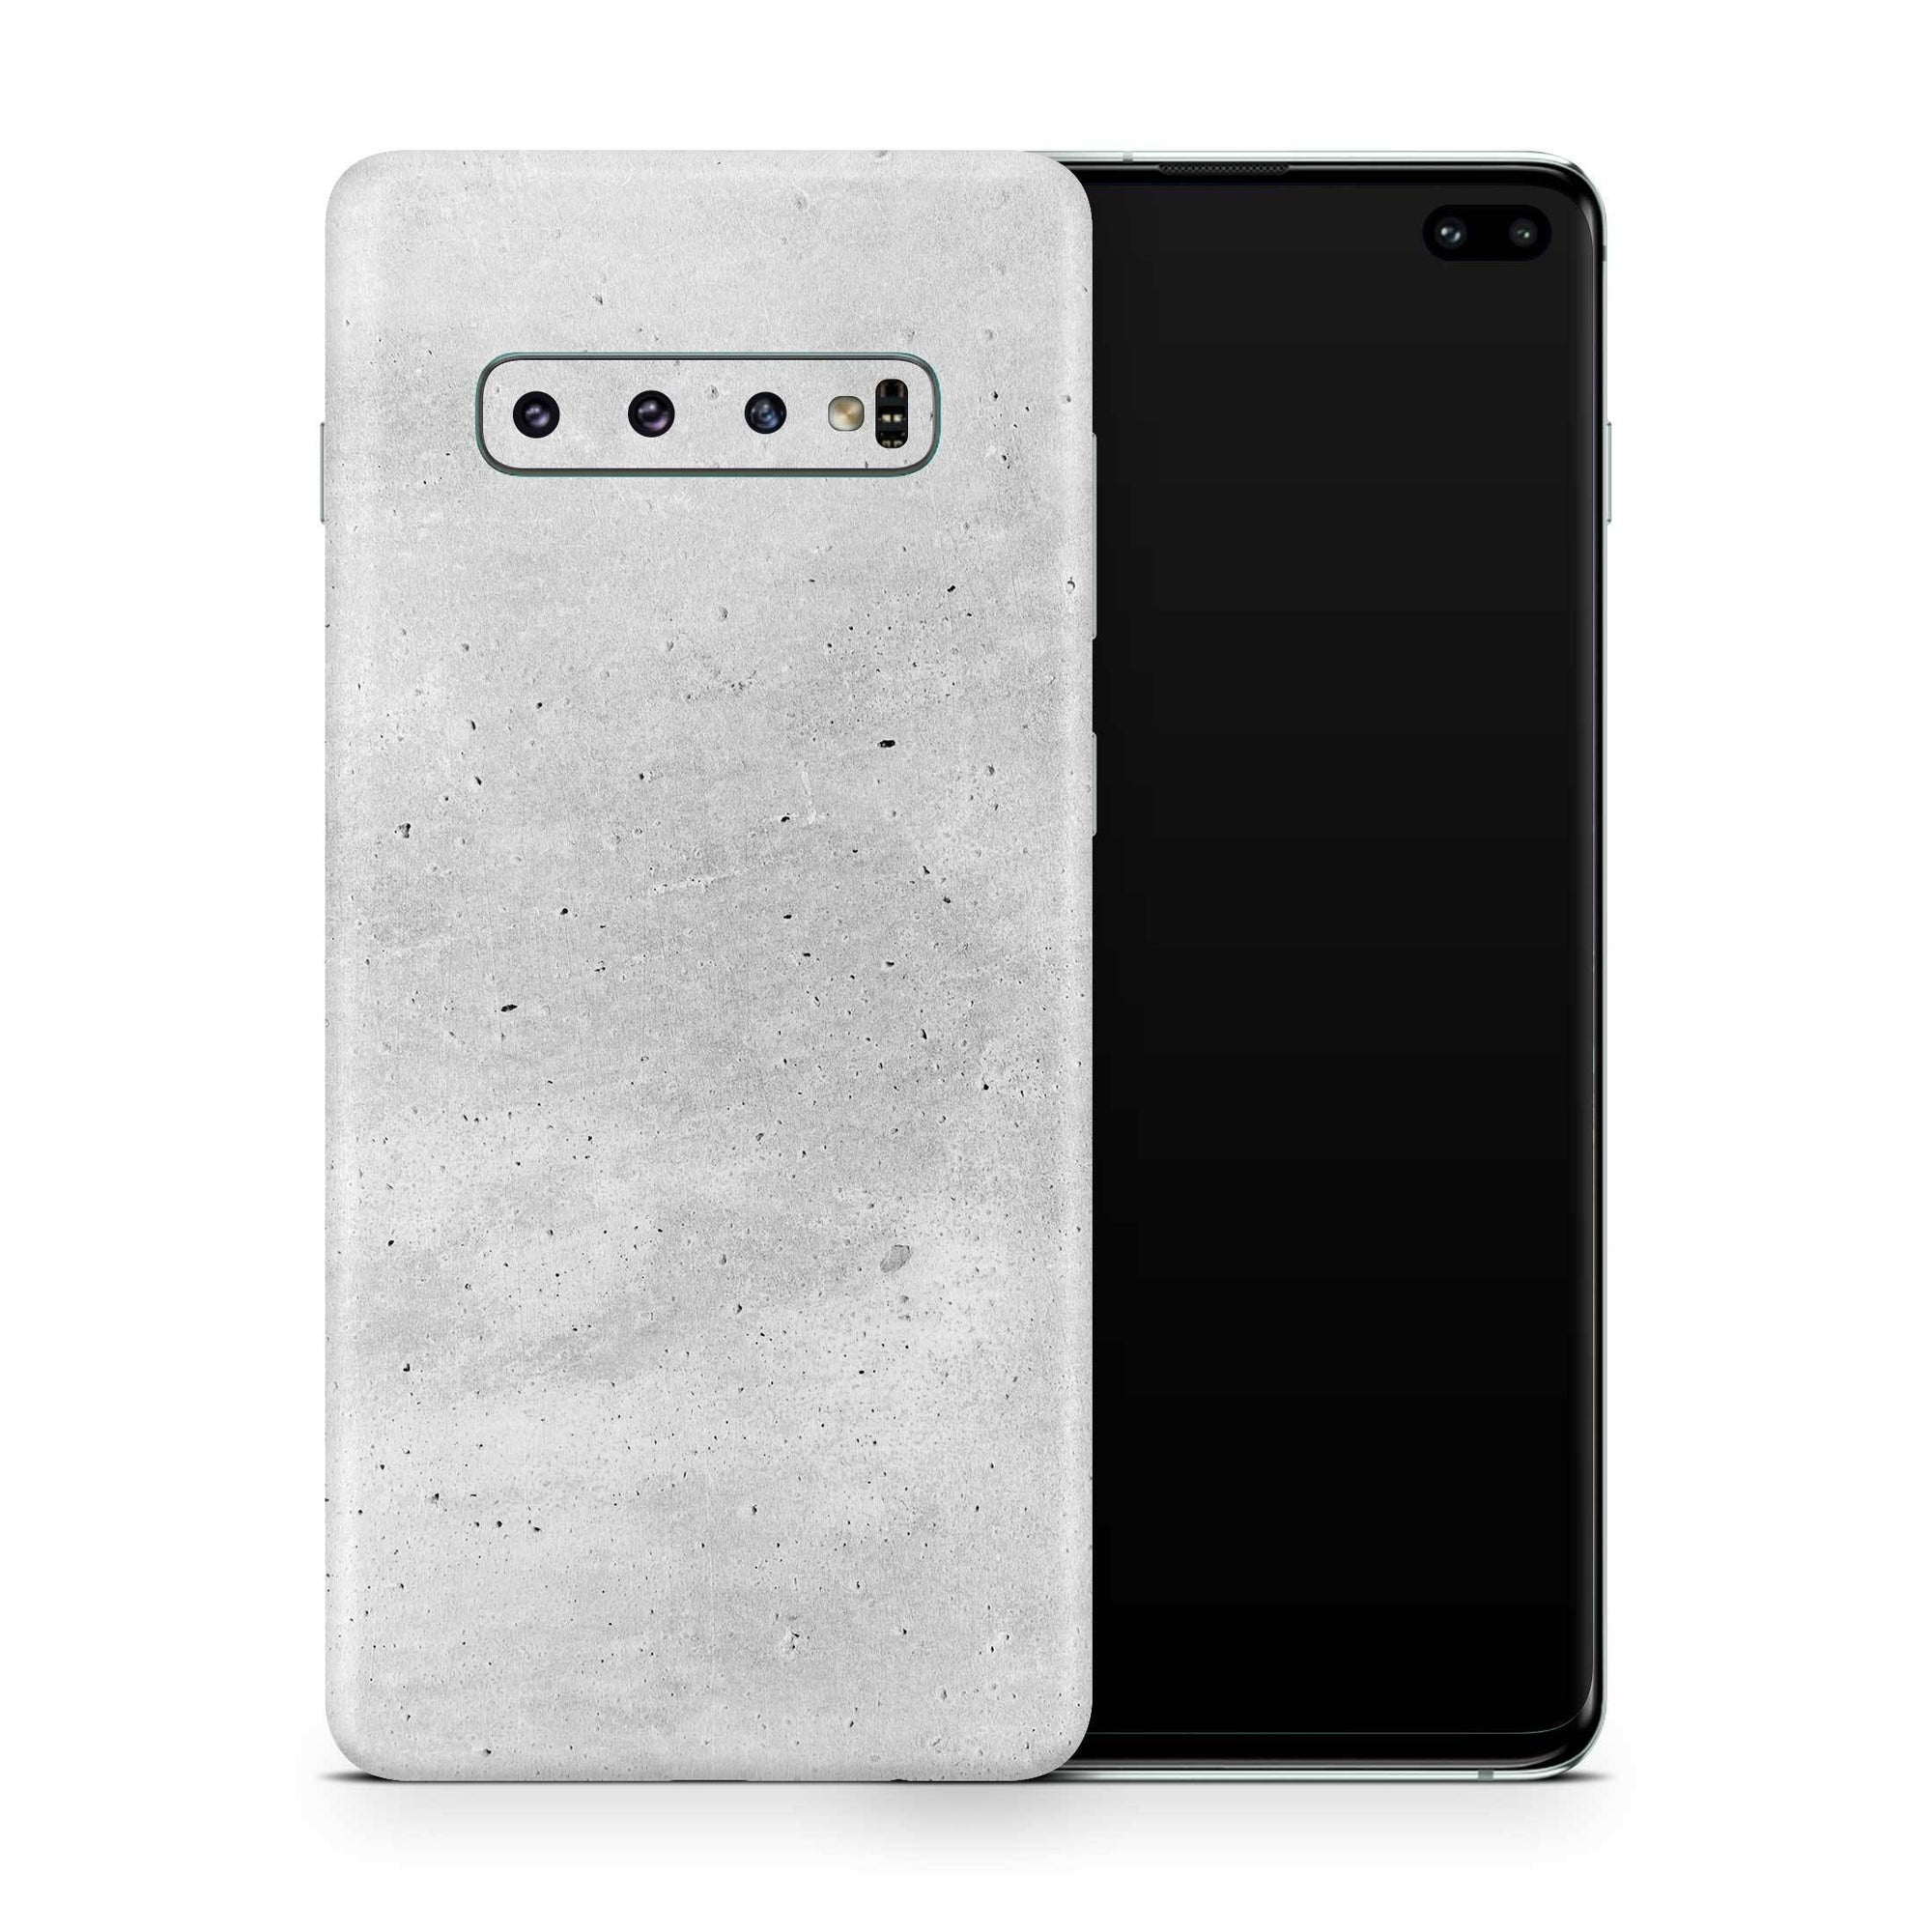 Concrete Galaxy S10e Skin + Case